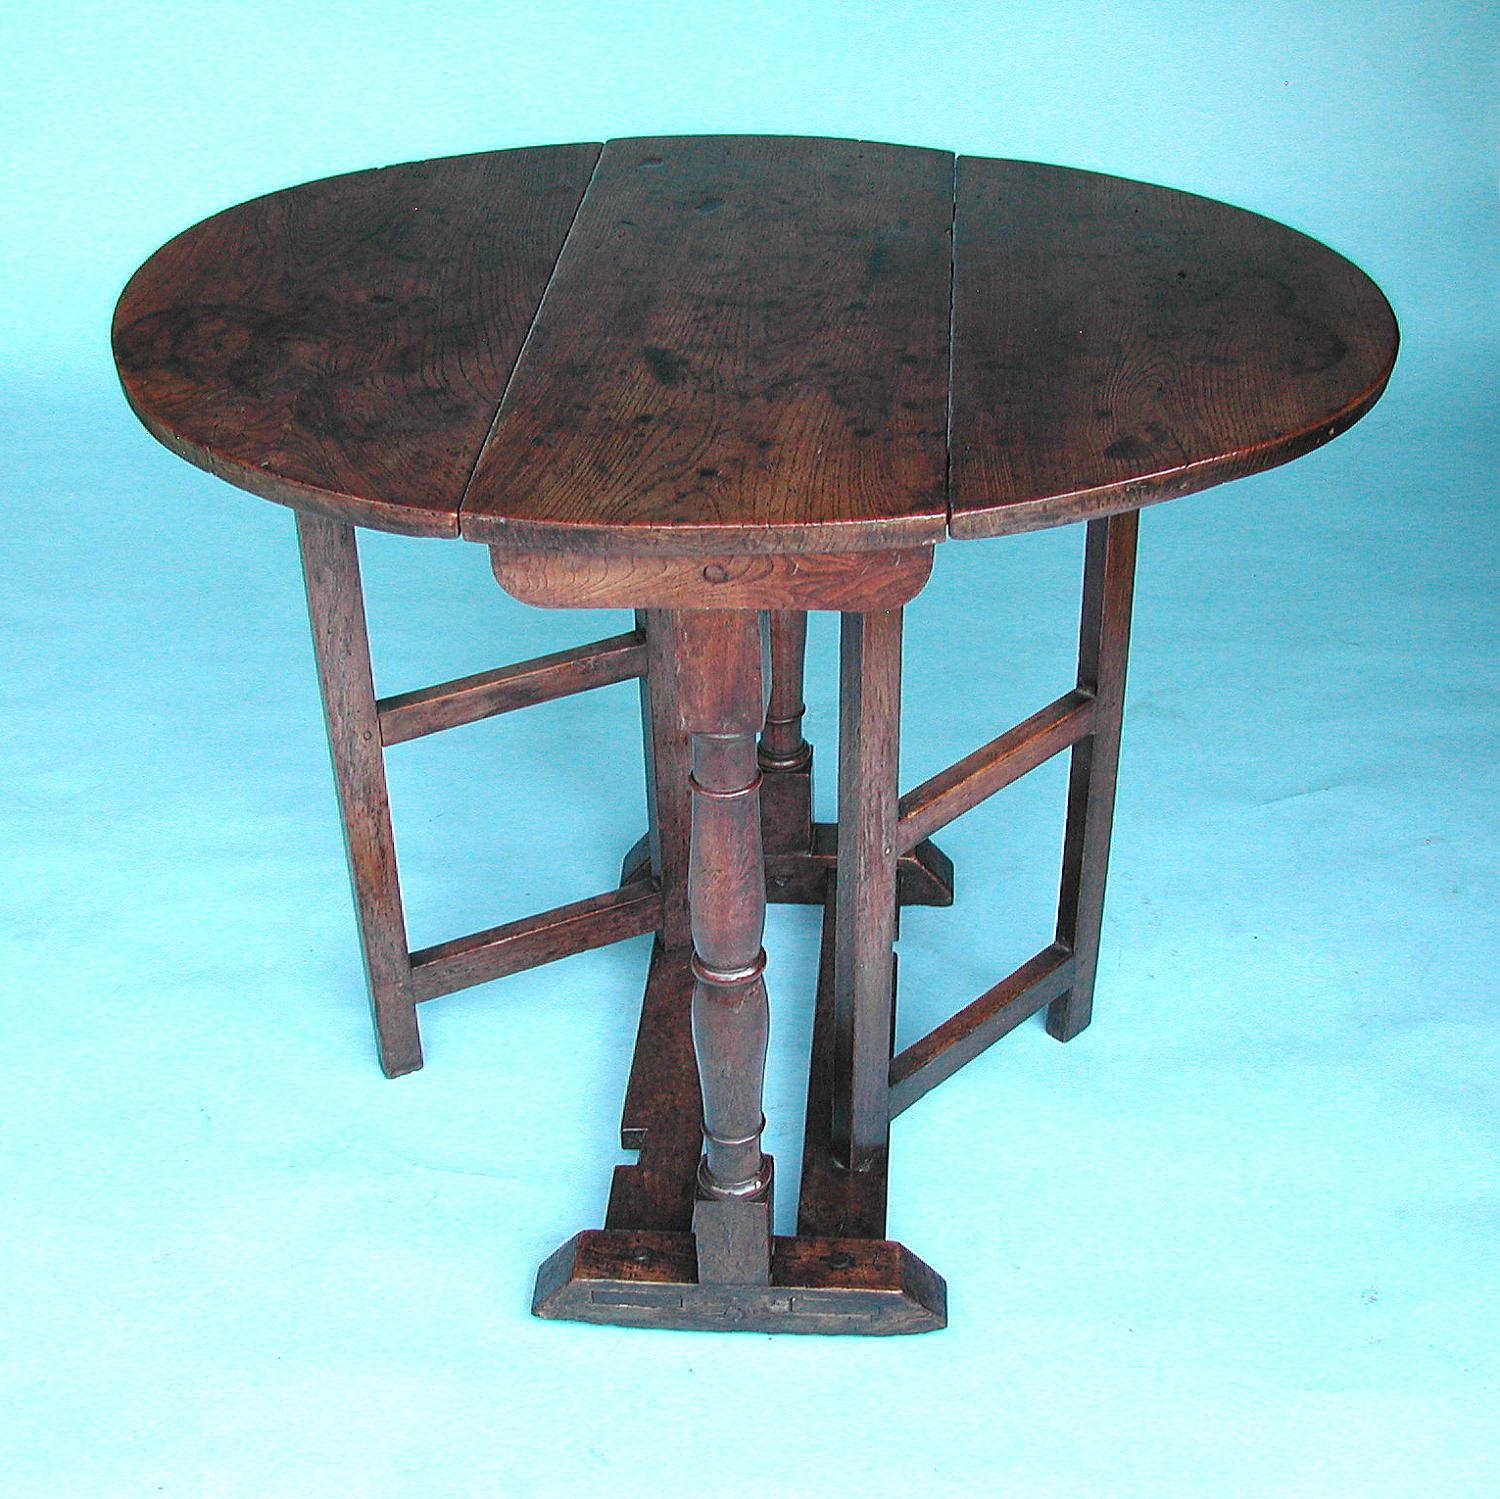 Antique Period 18thc Oak & Elm Gateleg Table. English. C1720-30